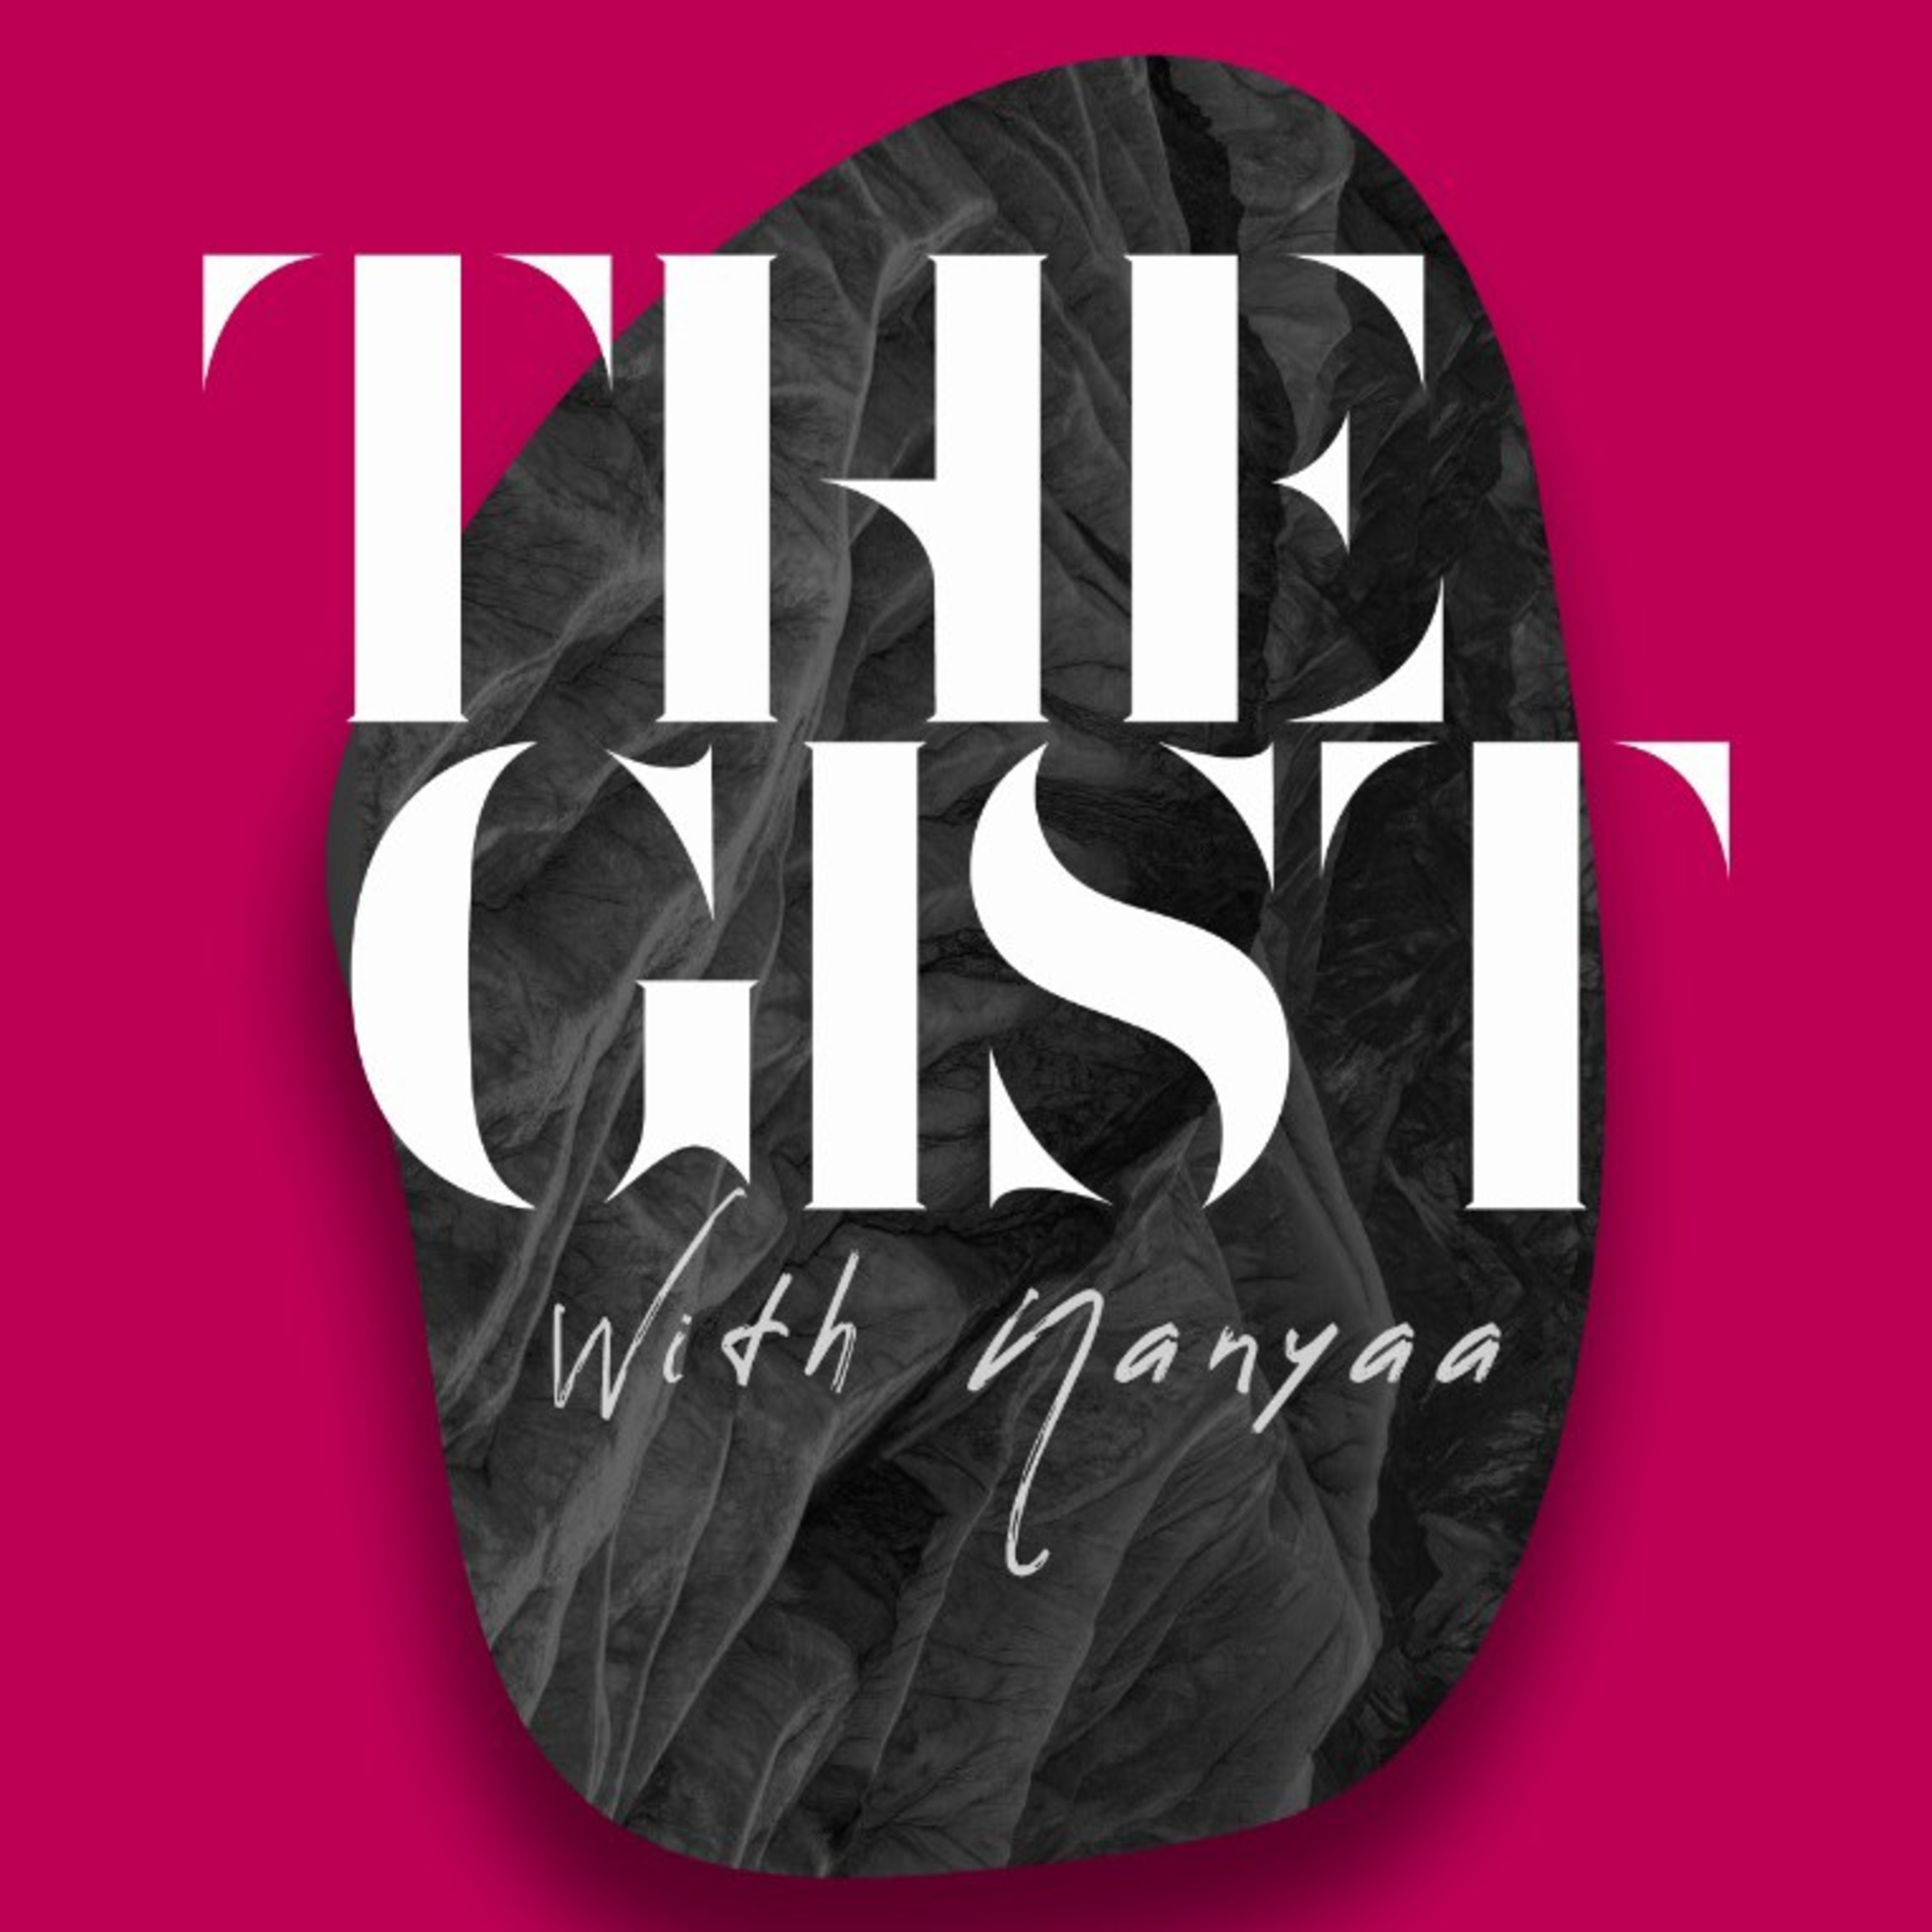 The Gist With Nanyaa on Jamit